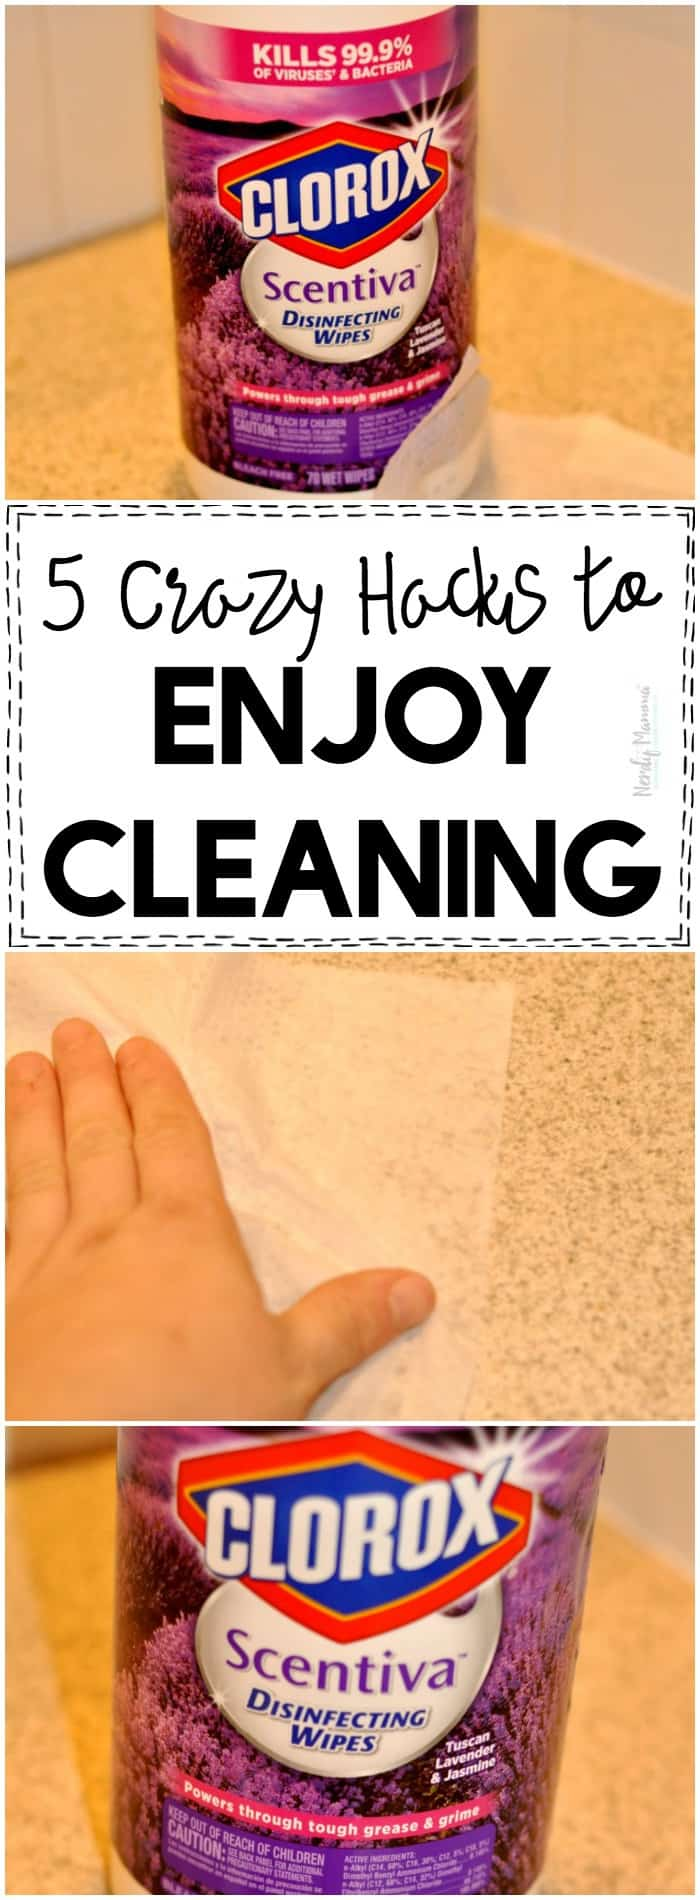 OMG! These tips ACTUALLY help me enjoy cleaning!